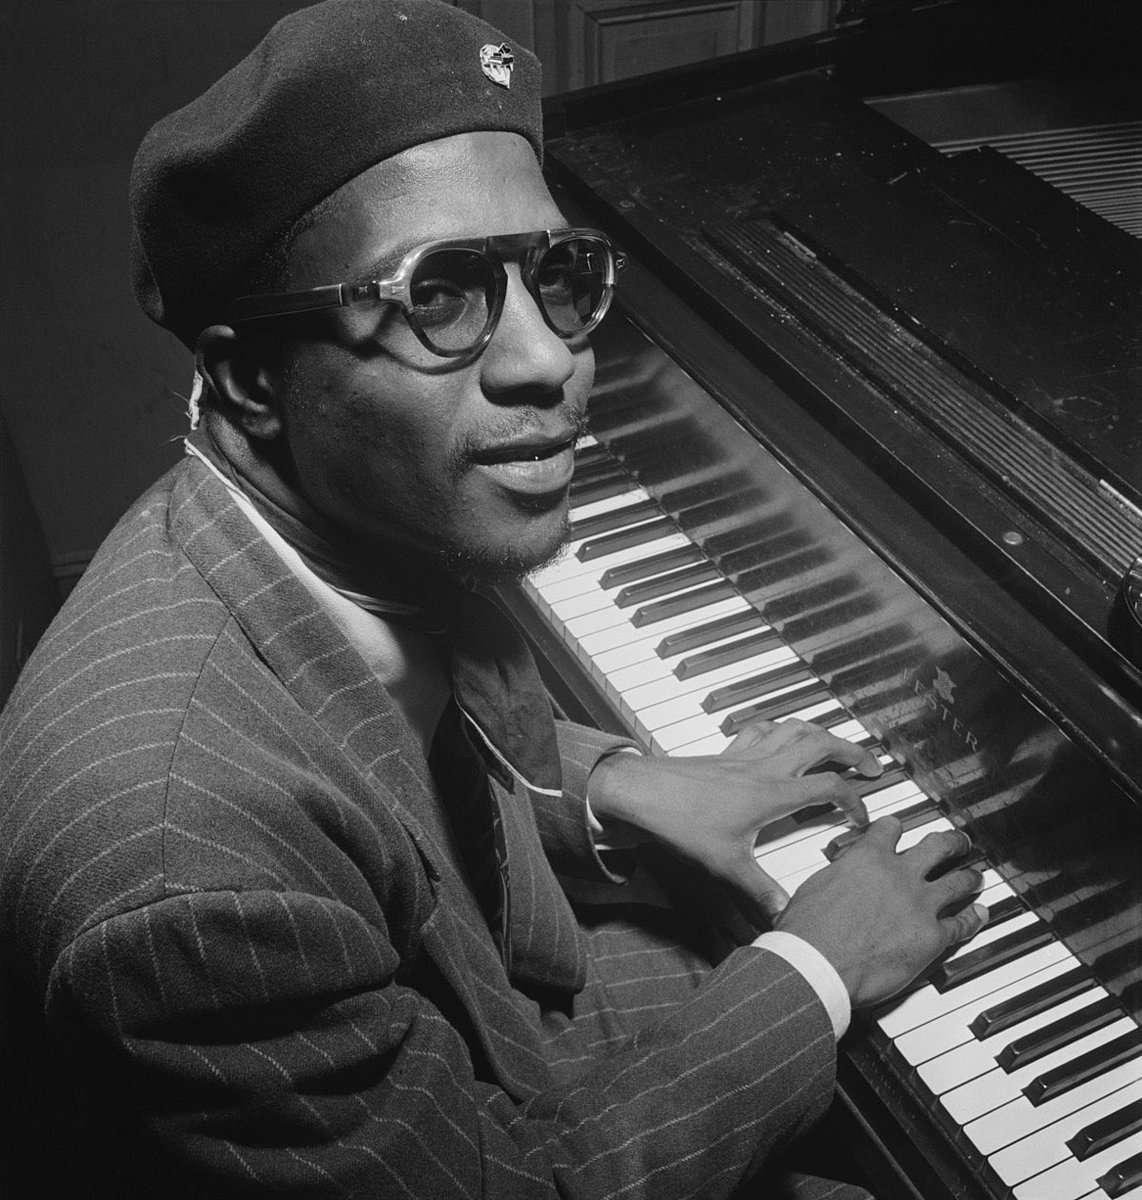 """Thelonious Monk  """"Misterioso""""  Live Lincoln Center, NY 1964  Charlie Rouse-Tenor Sax   https:// youtu.be/7te1syRAYO0    <br>http://pic.twitter.com/yA9YTJ1xBg"""